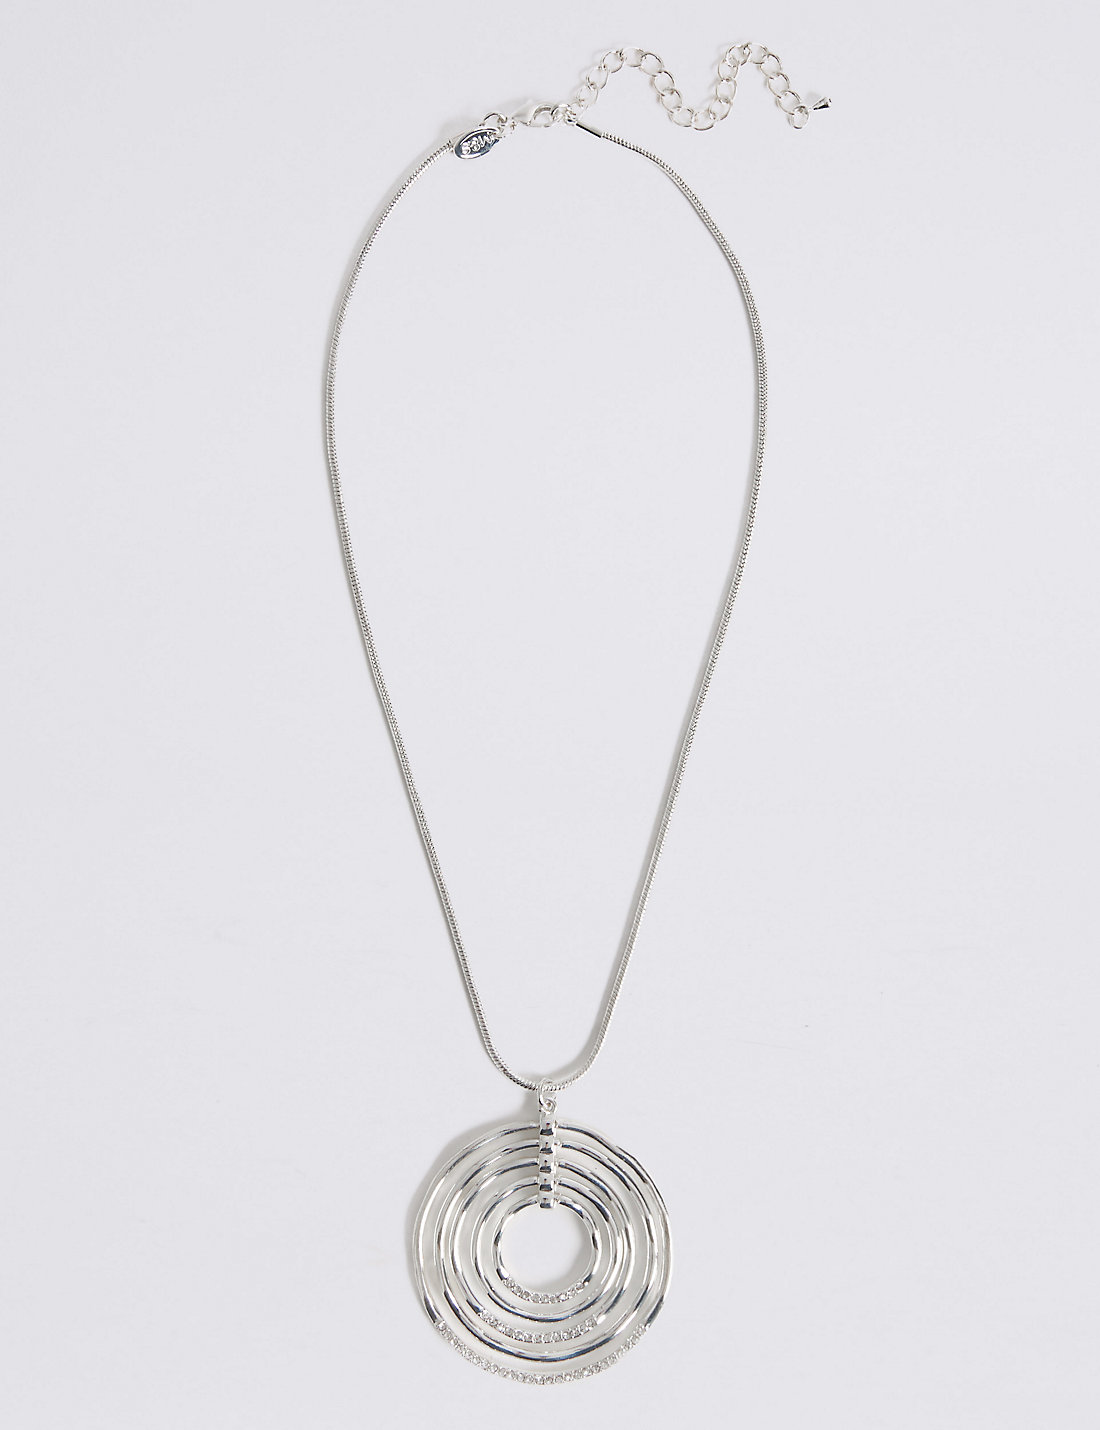 marks and spencers necklace